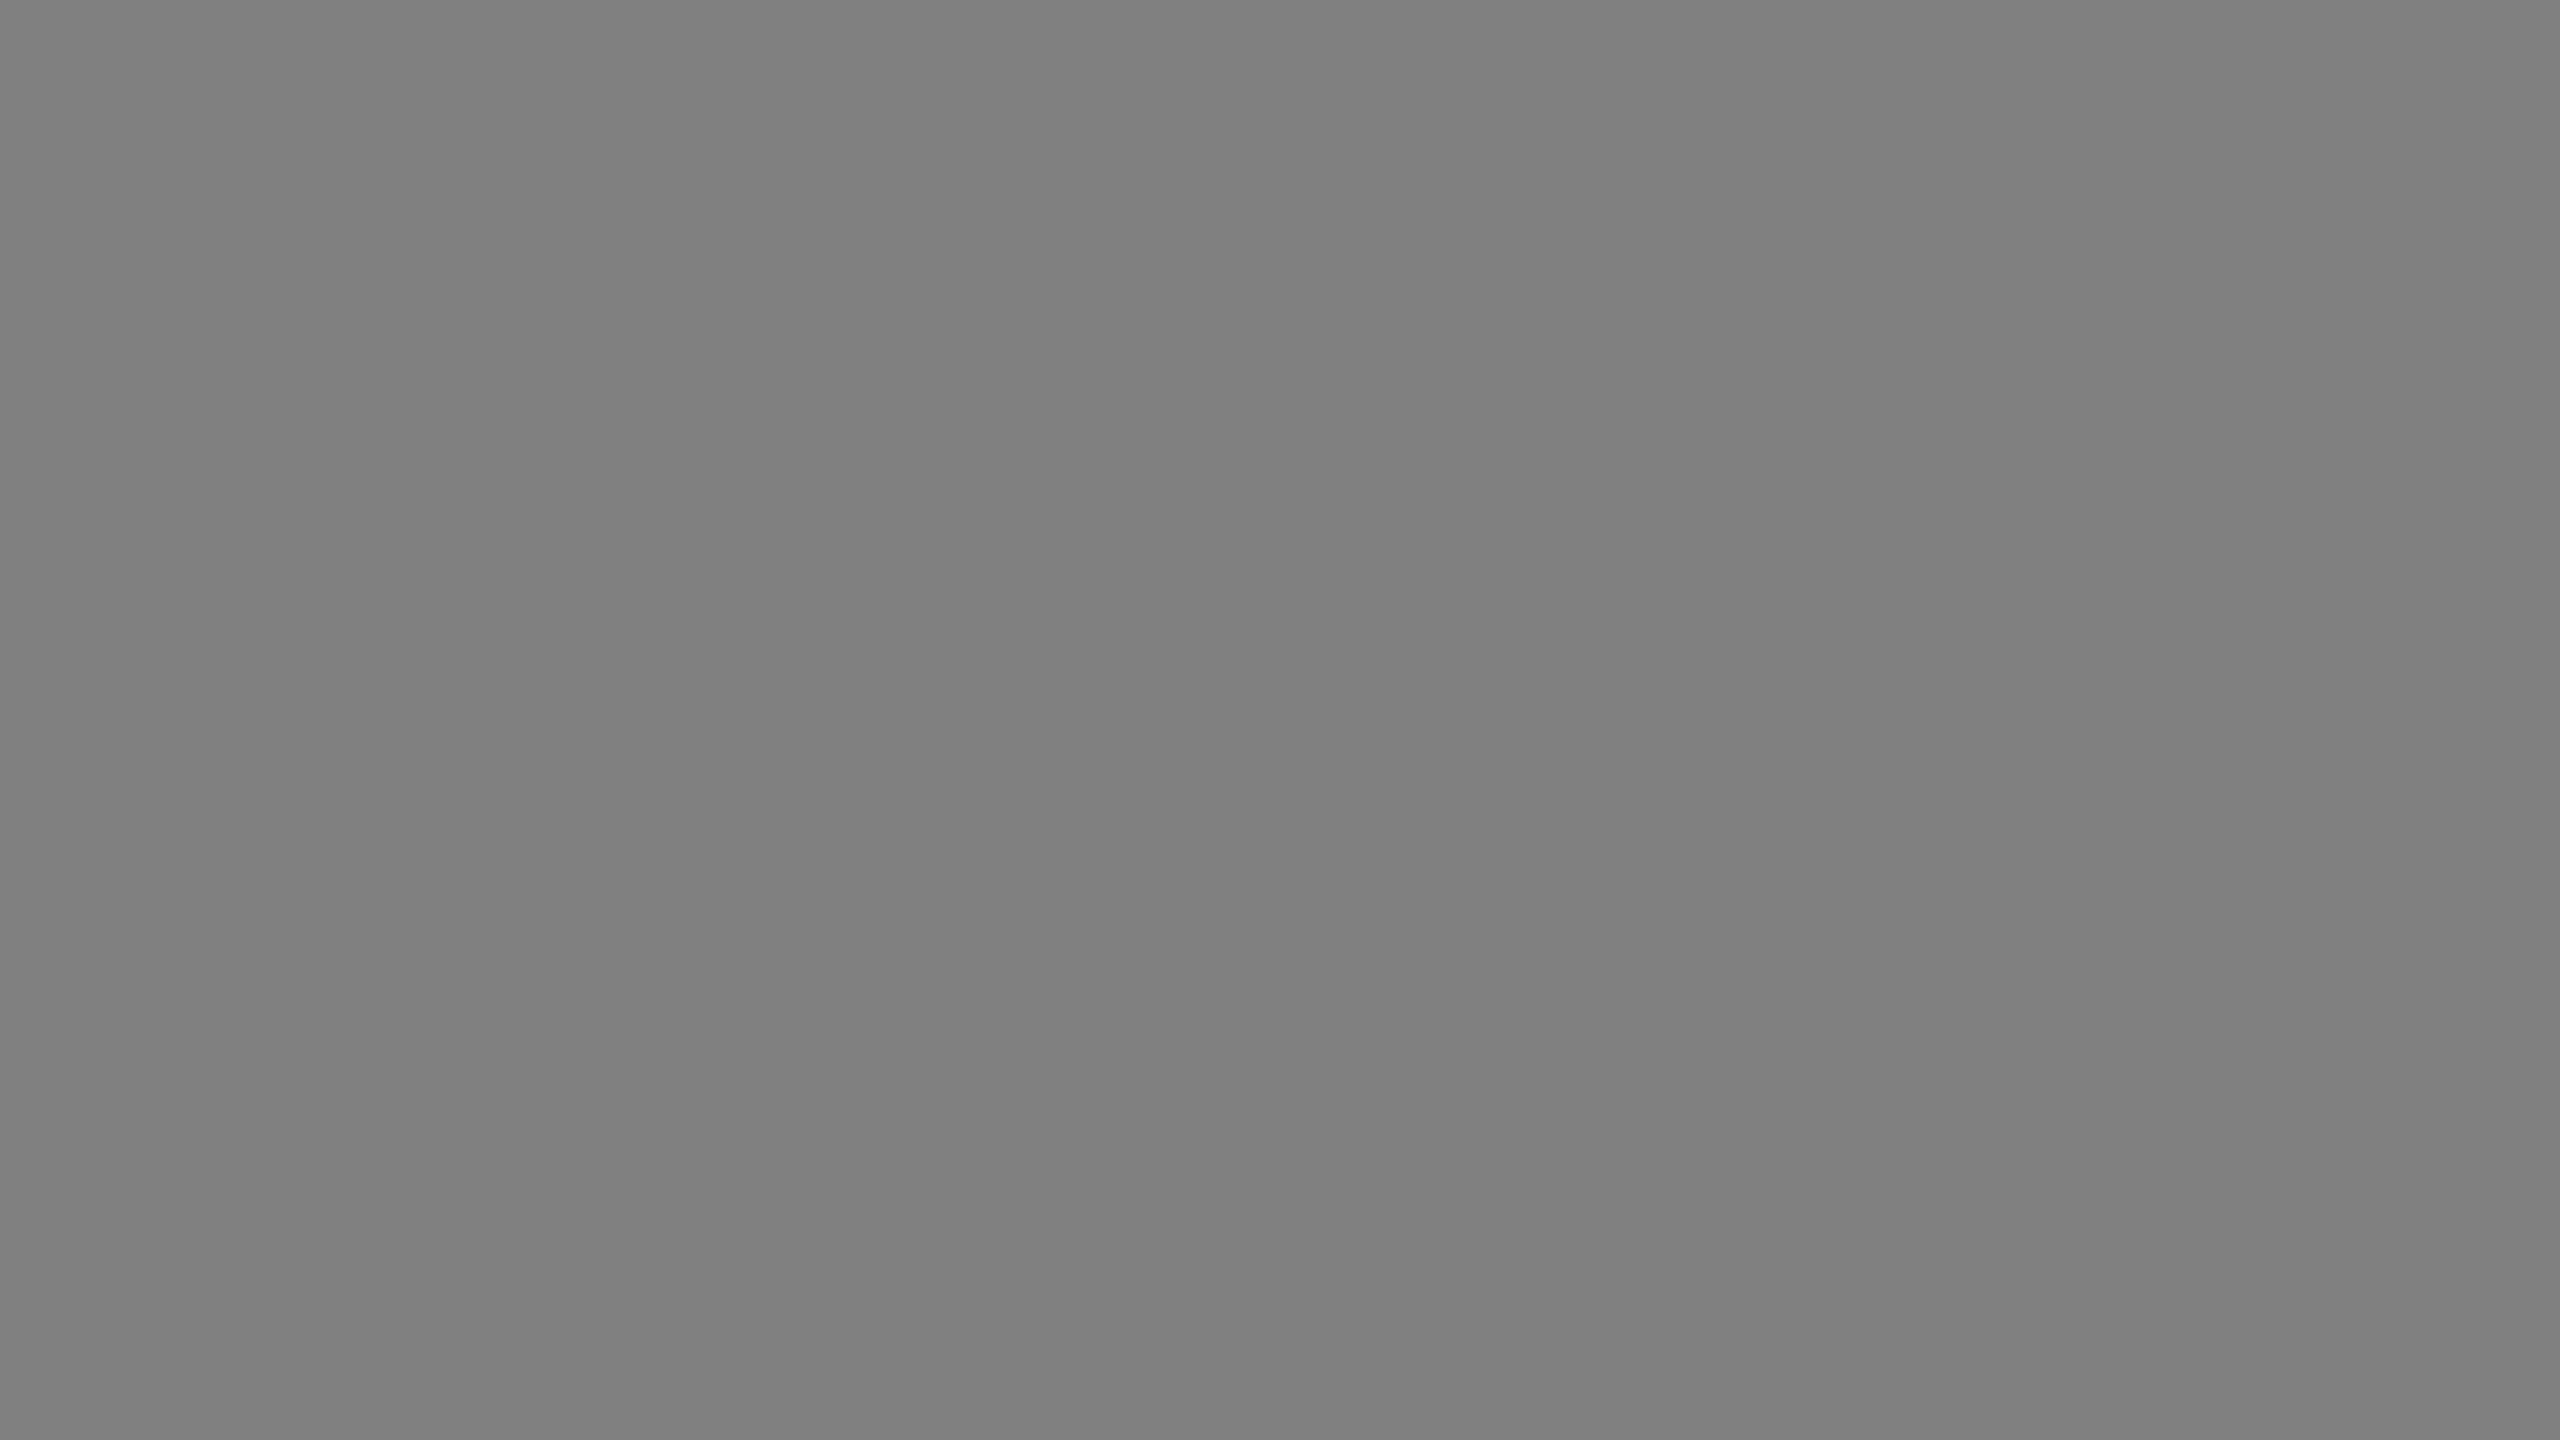 2560x1440-gray-solid-color-background